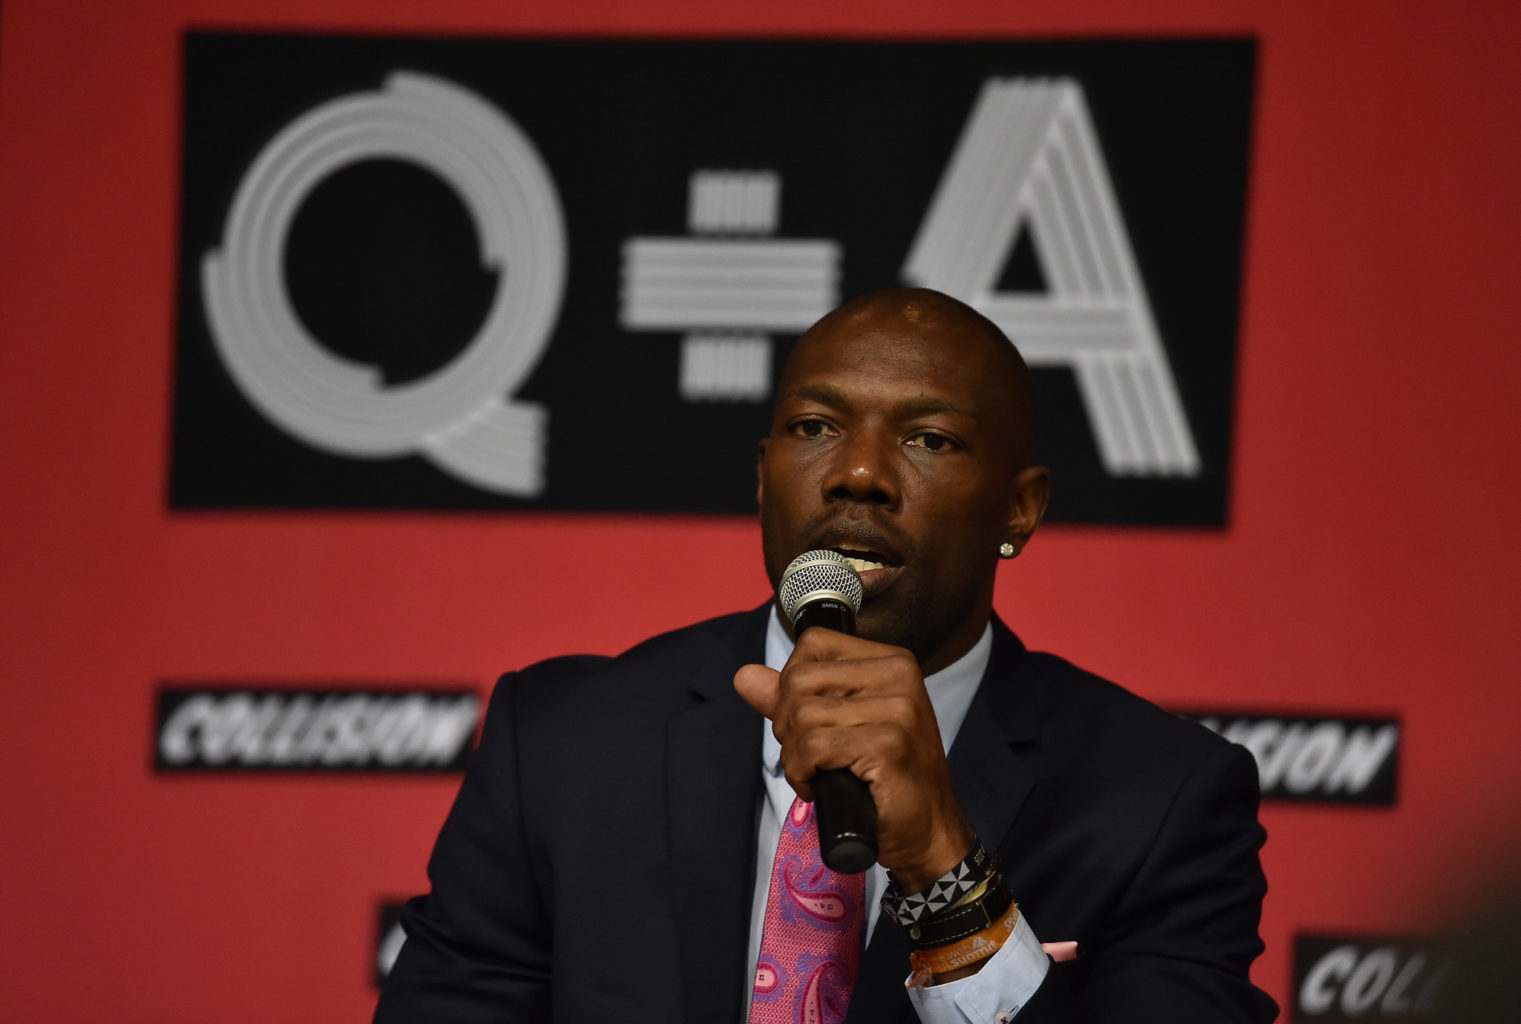 Terrell Owens took a shot at the 49ers when confronted by TMZ's cameras. (Courtesy Collision Conf/Flickr)